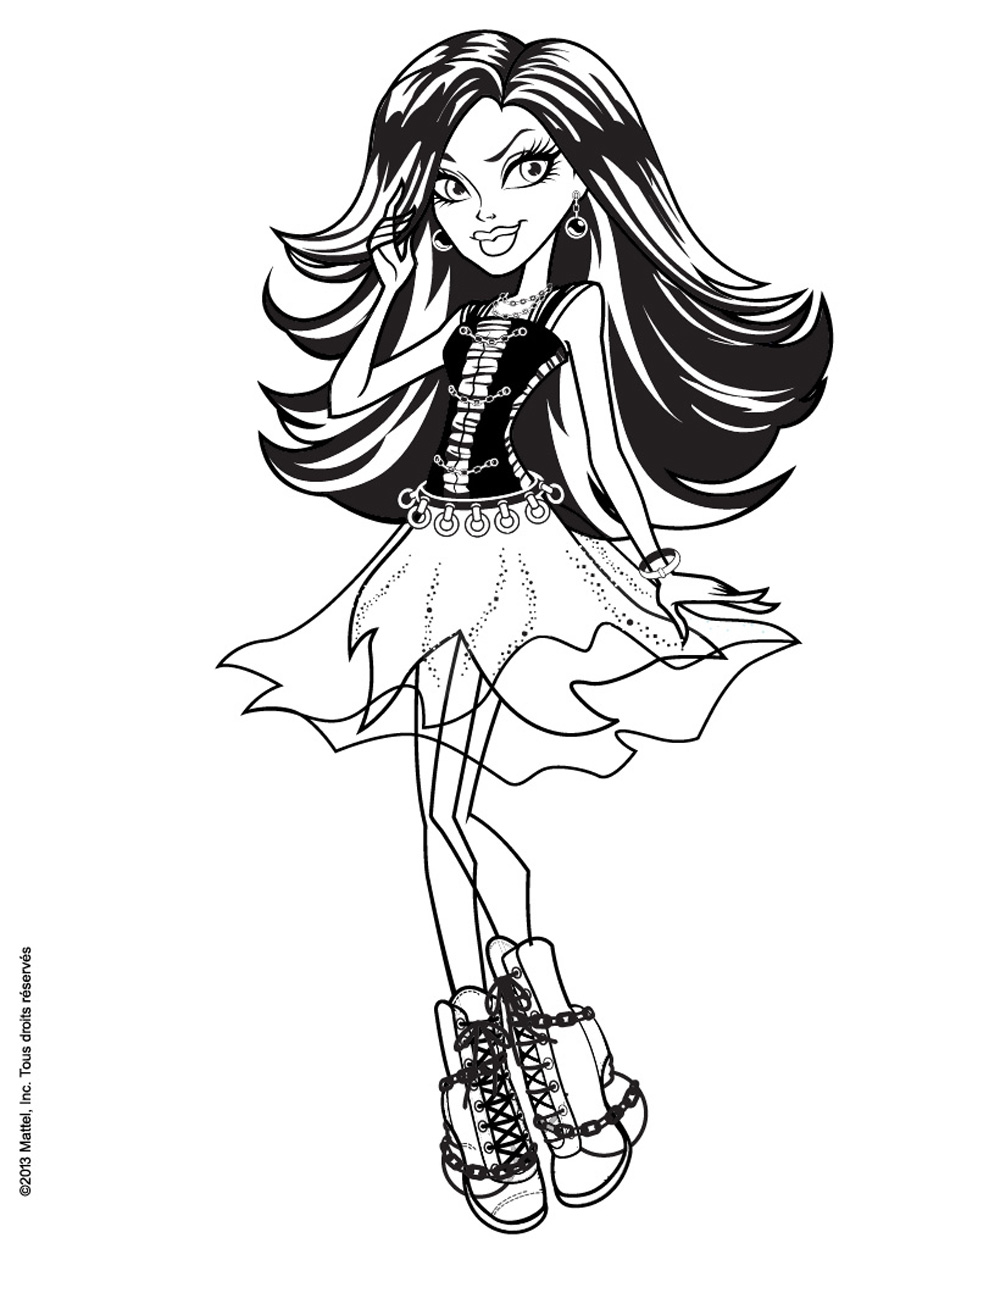 Monsterhigh spectra vondergeist coloriage monster high coloriages pour enfants page 2 - Dessin monster ...